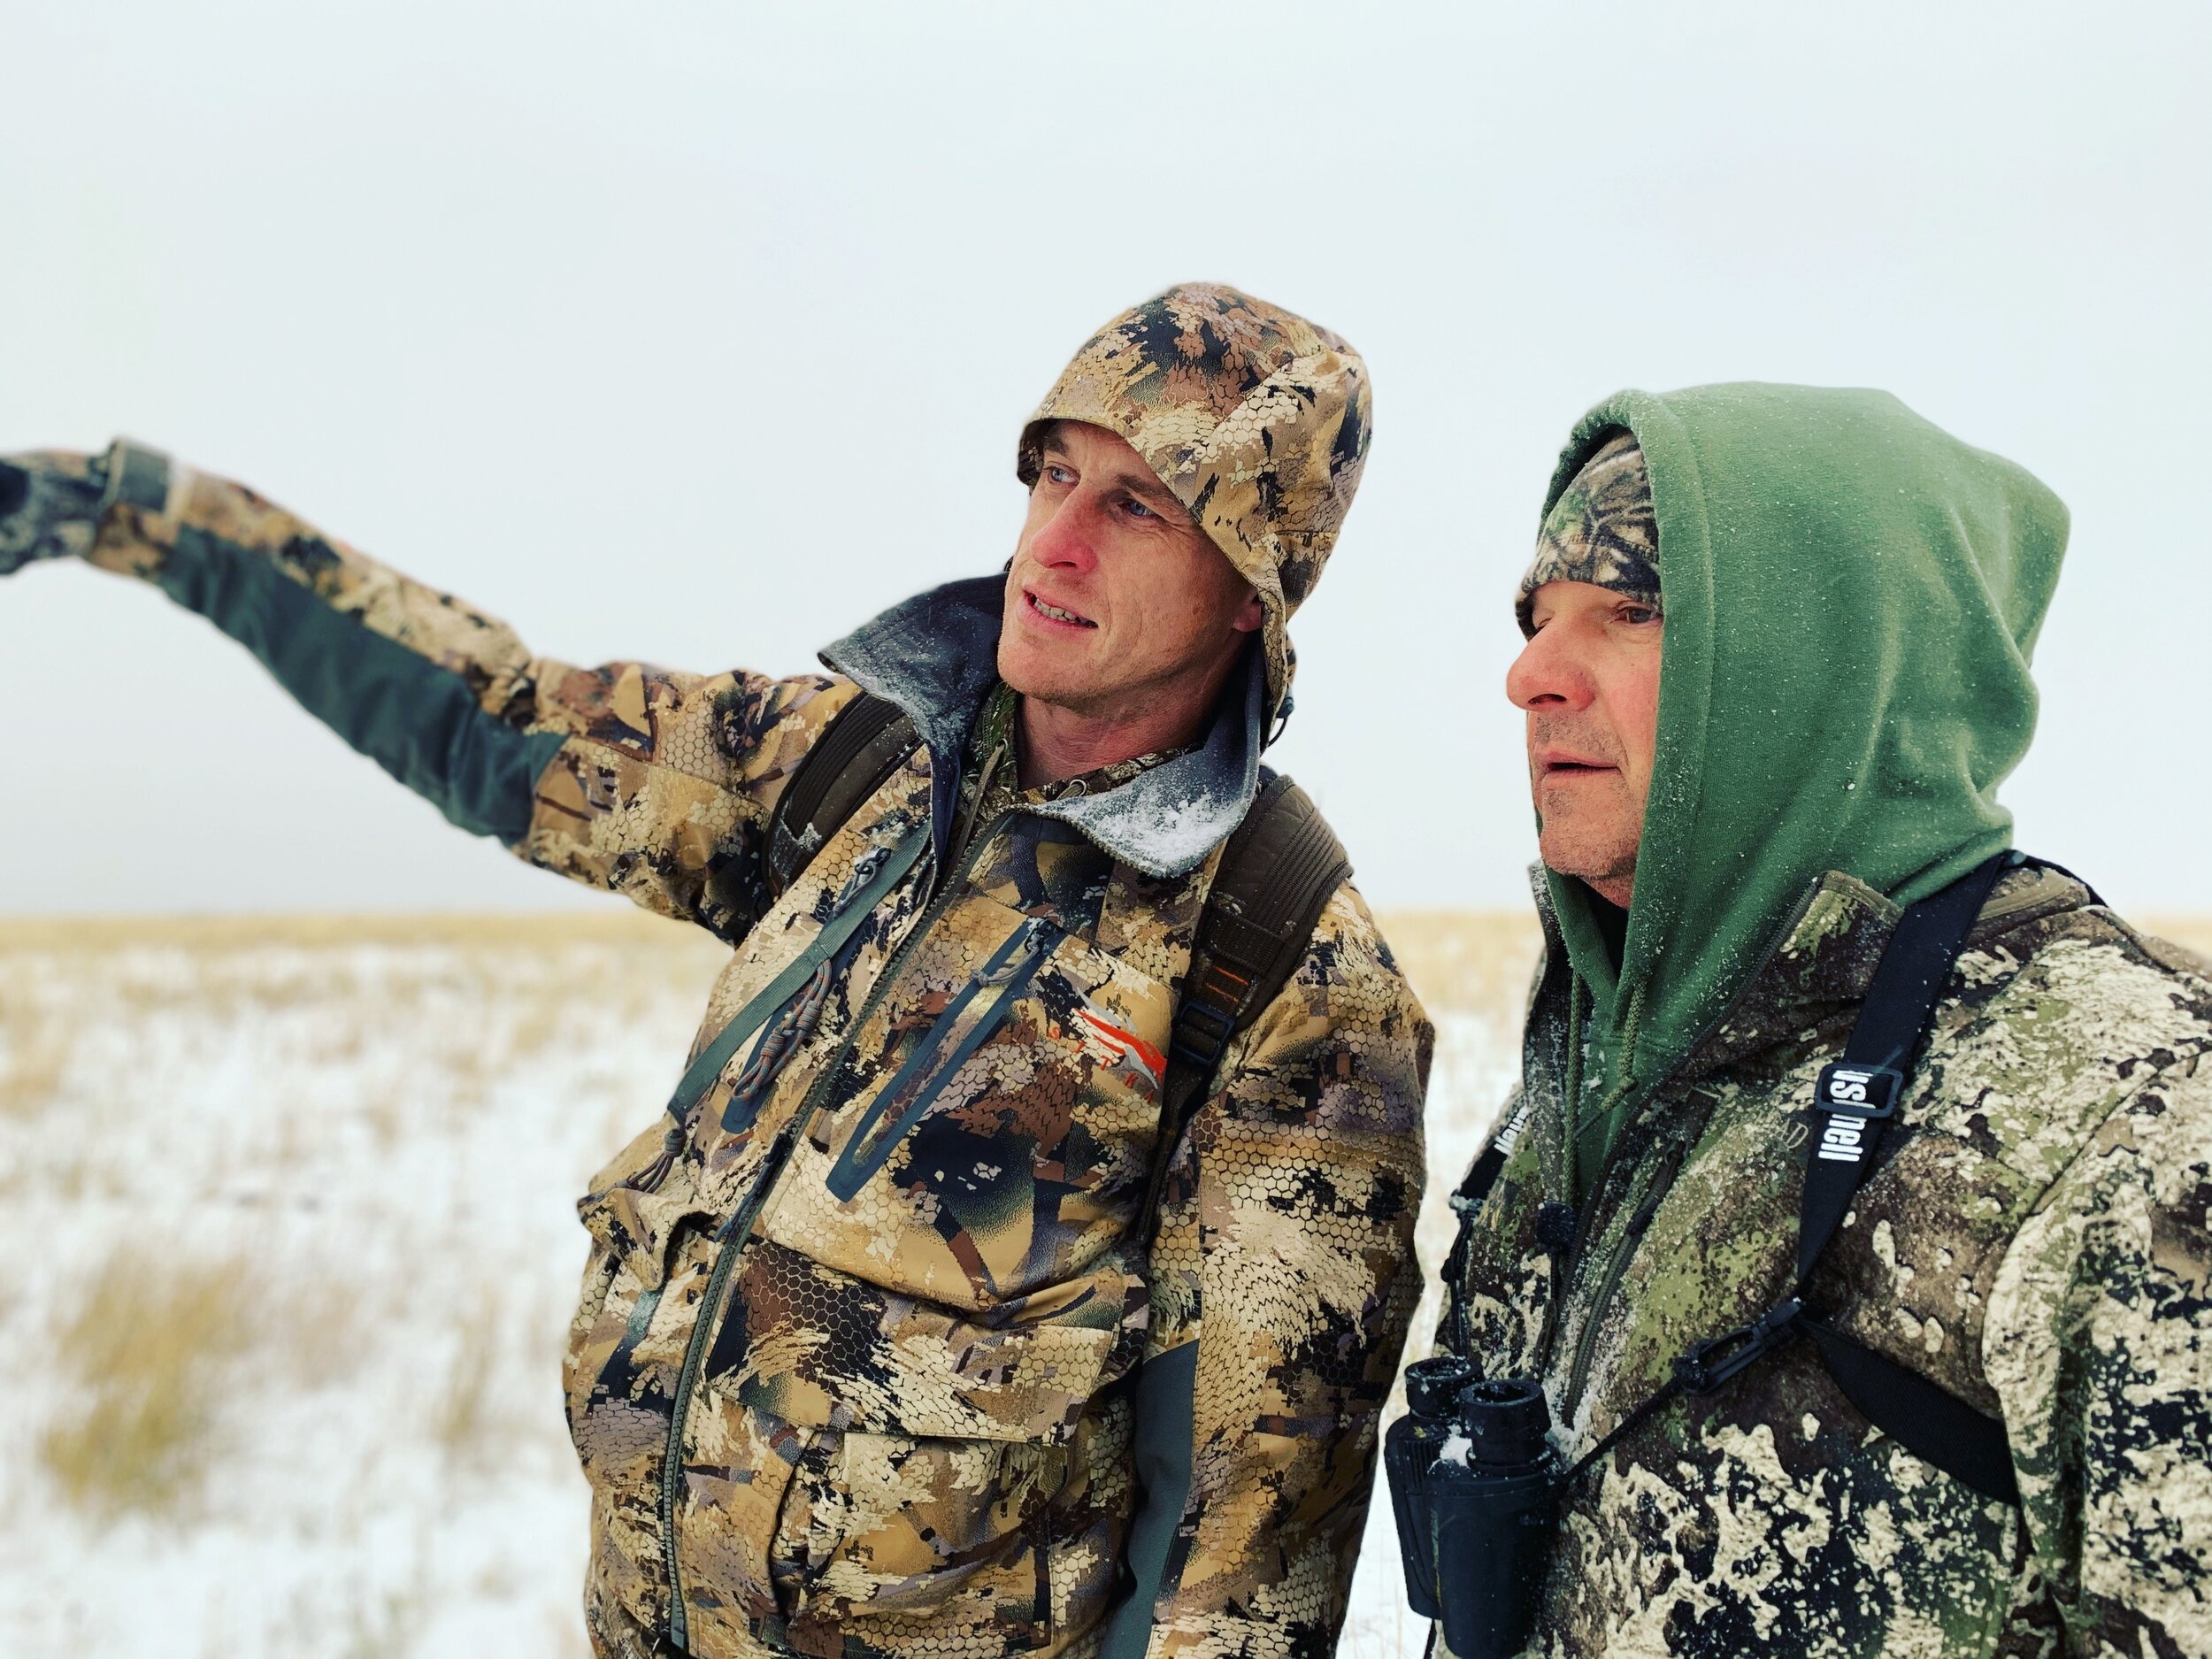 Day 1 of our 2019 Montana Pronghorn hunt.  Admins Drew Tvrdik (left) and Chester Barnes pictured